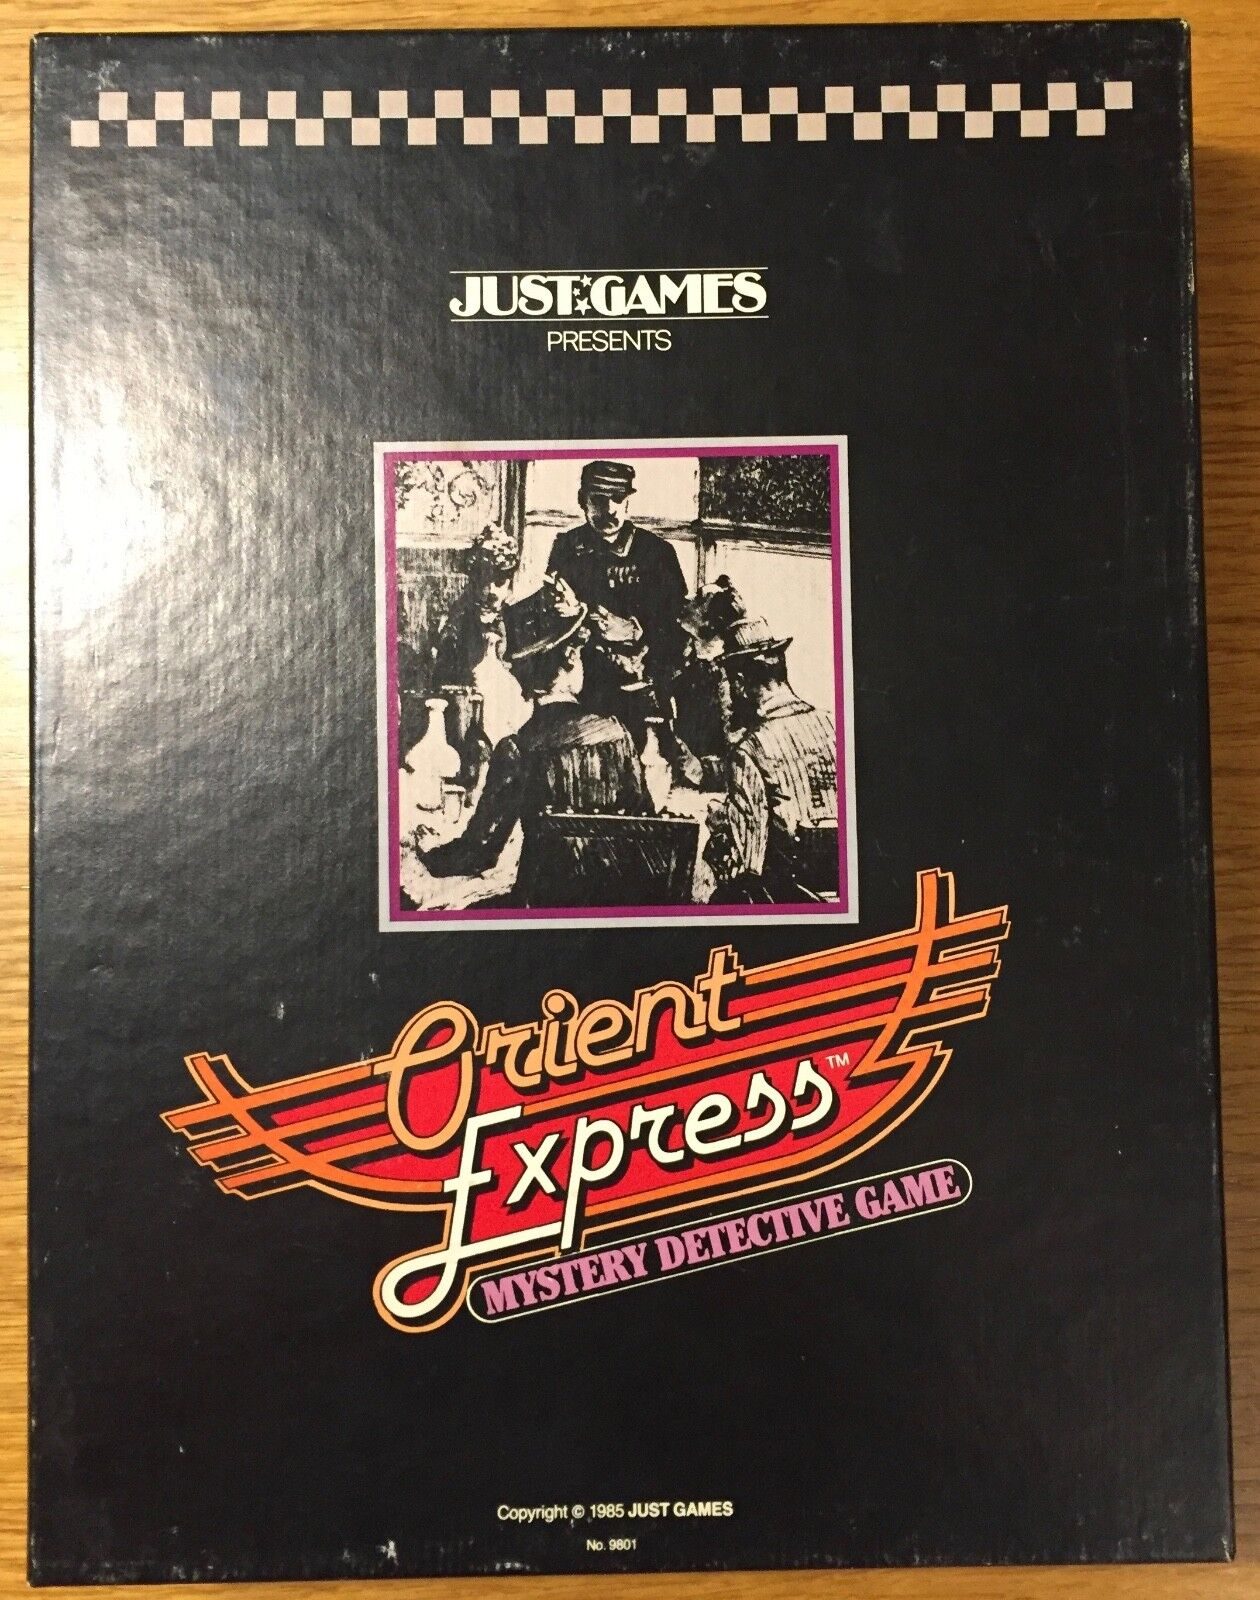 Orient Express - Just Games 1985 - PUNCHED